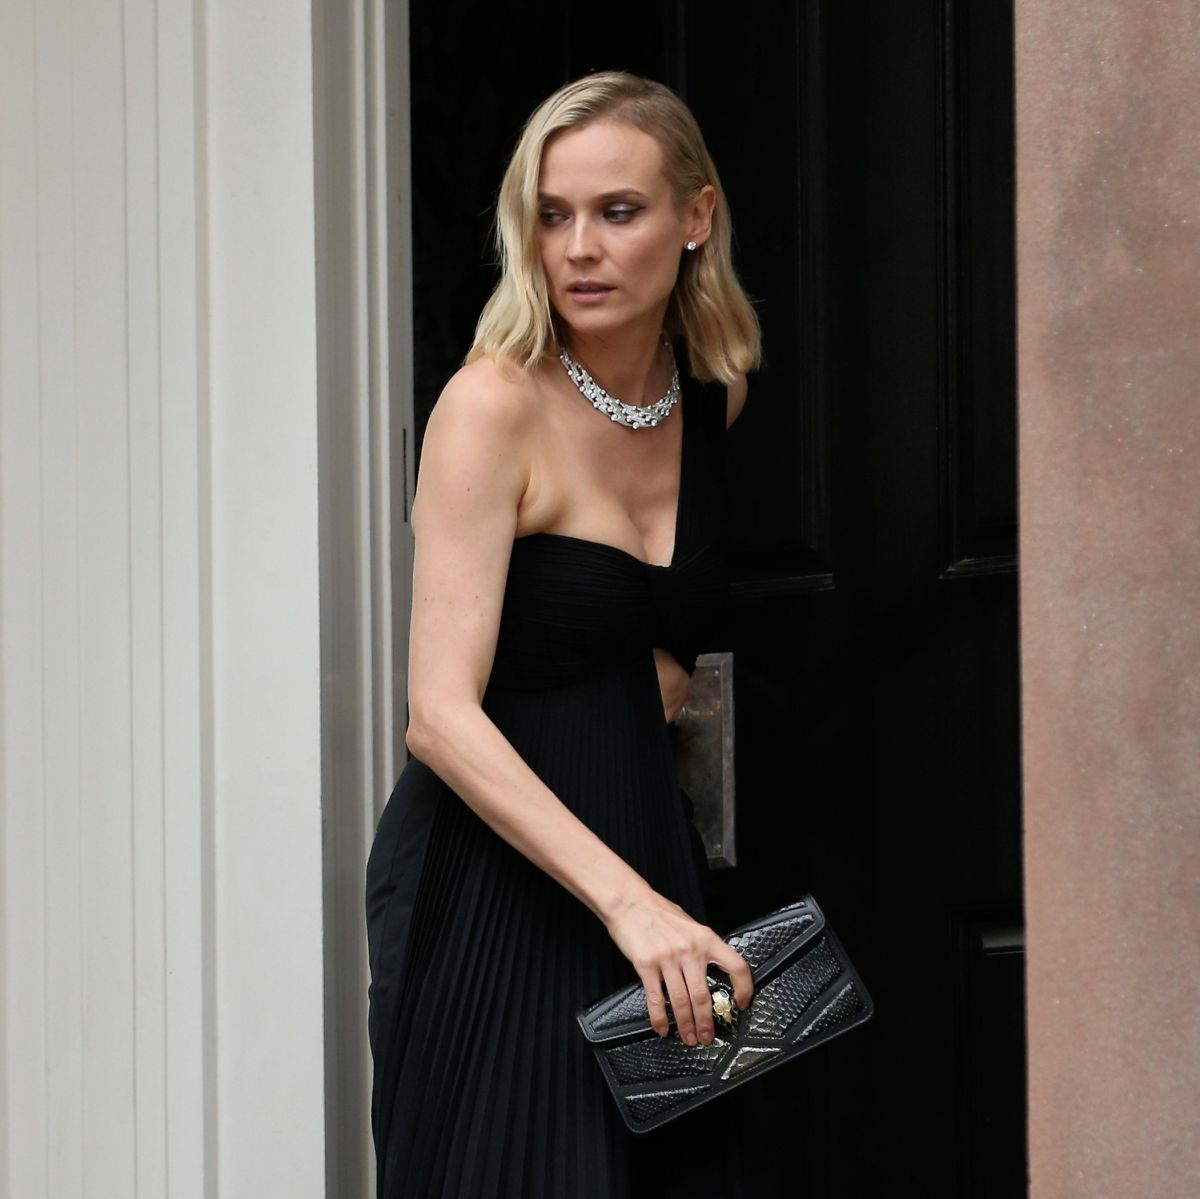 Flat In New York: Diane Kruger Leaving Her Apartment In New York